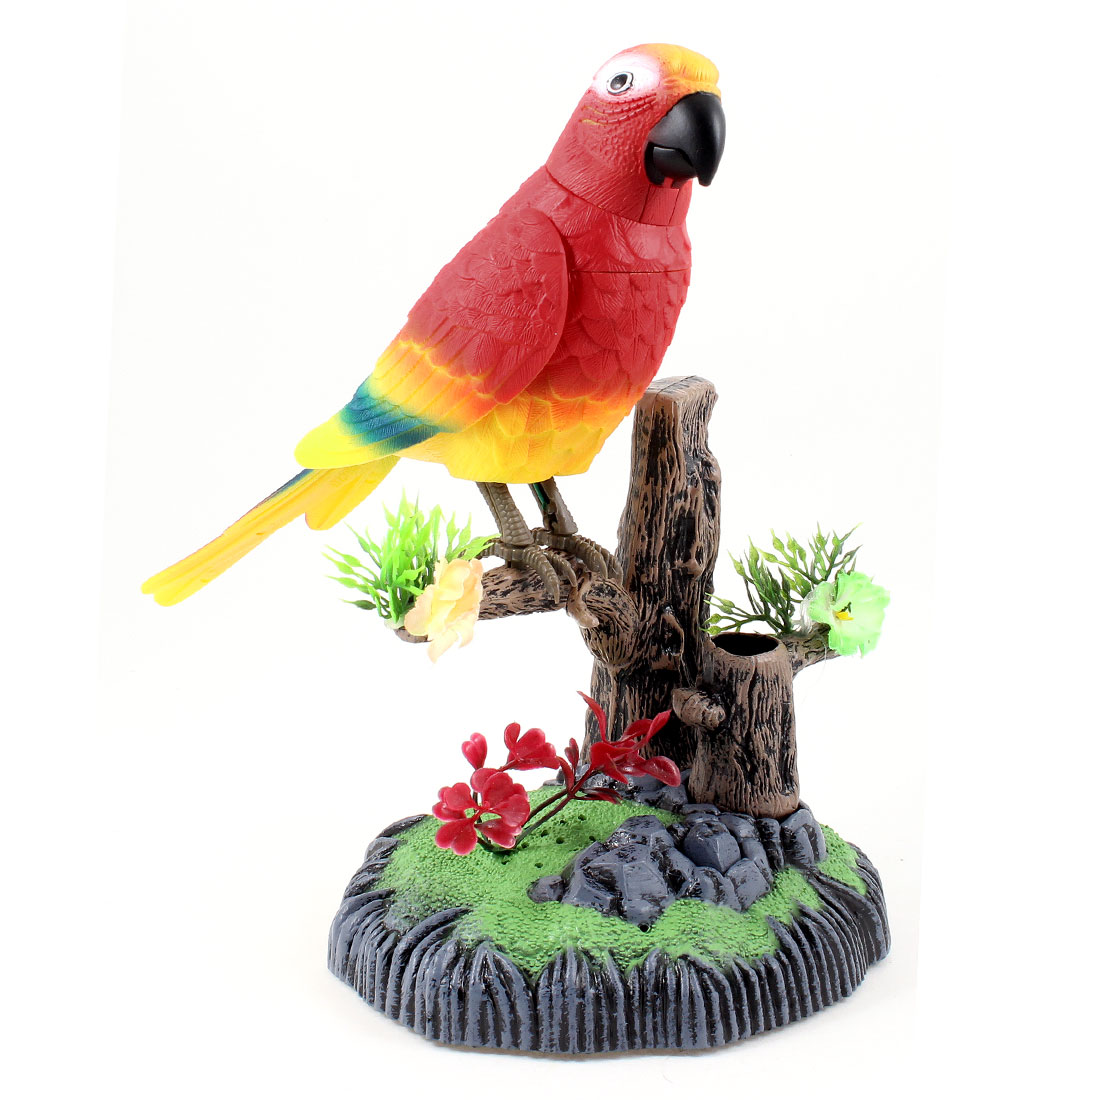 Children Plastic Toy Tool Sound Voice Control Chirping Parrot Bird Colorful